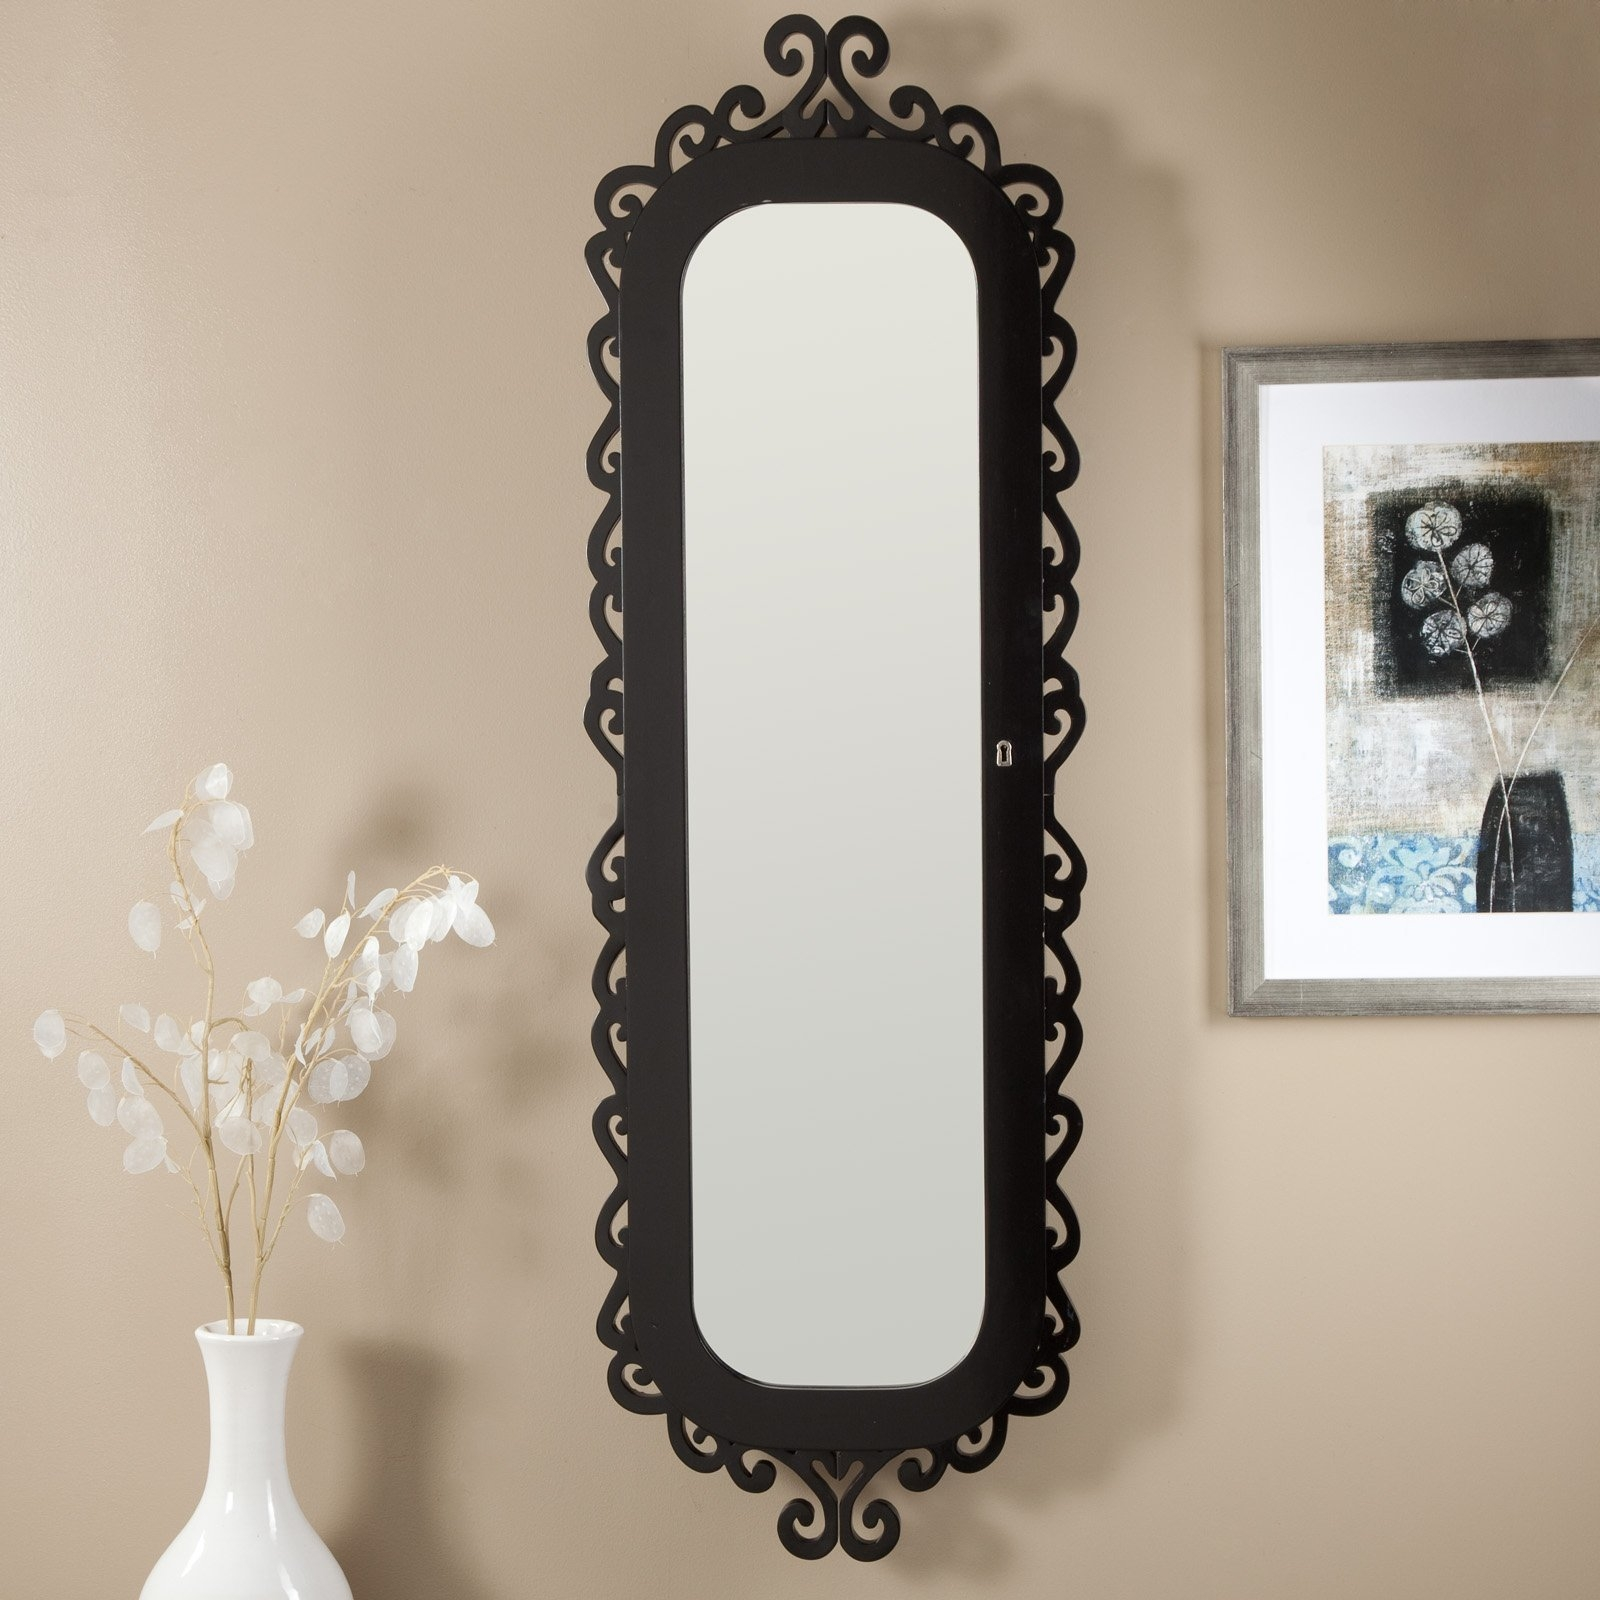 Buy Bathroom Mirrors Online Creative Bathroom Decoration Throughout Vintage Mirrors Cheap (Image 3 of 15)